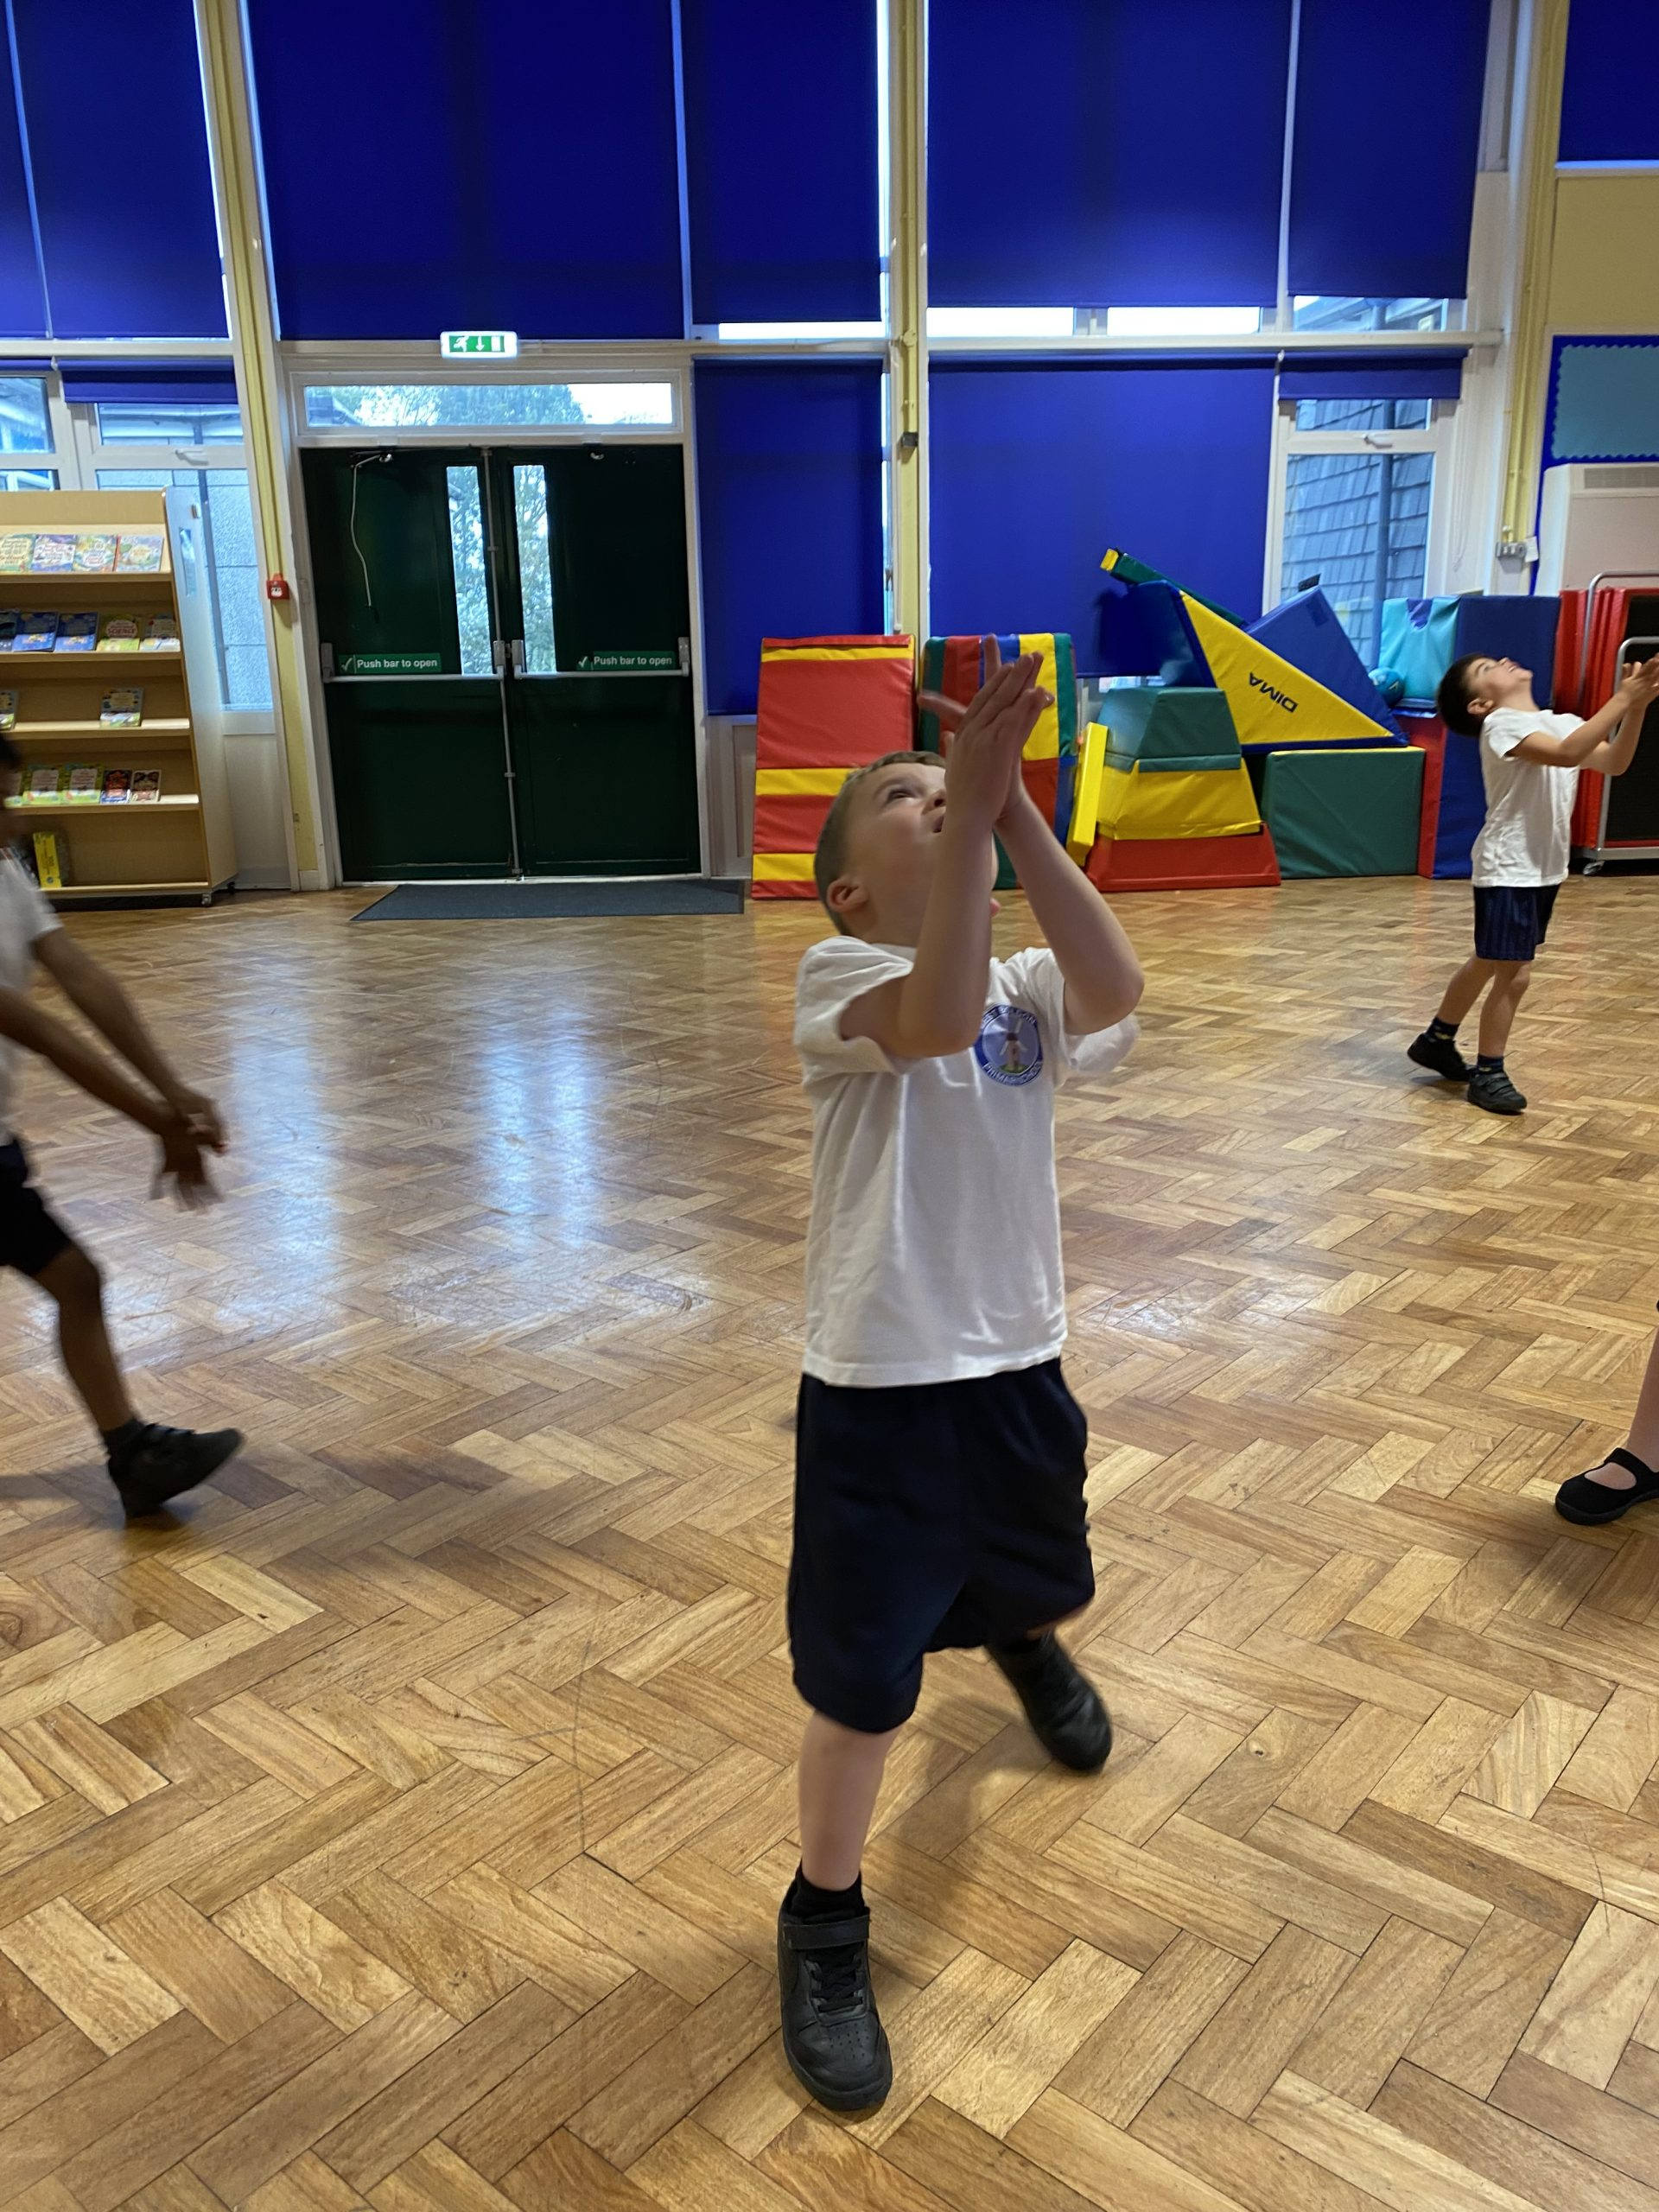 Year 1 working on their ball skills